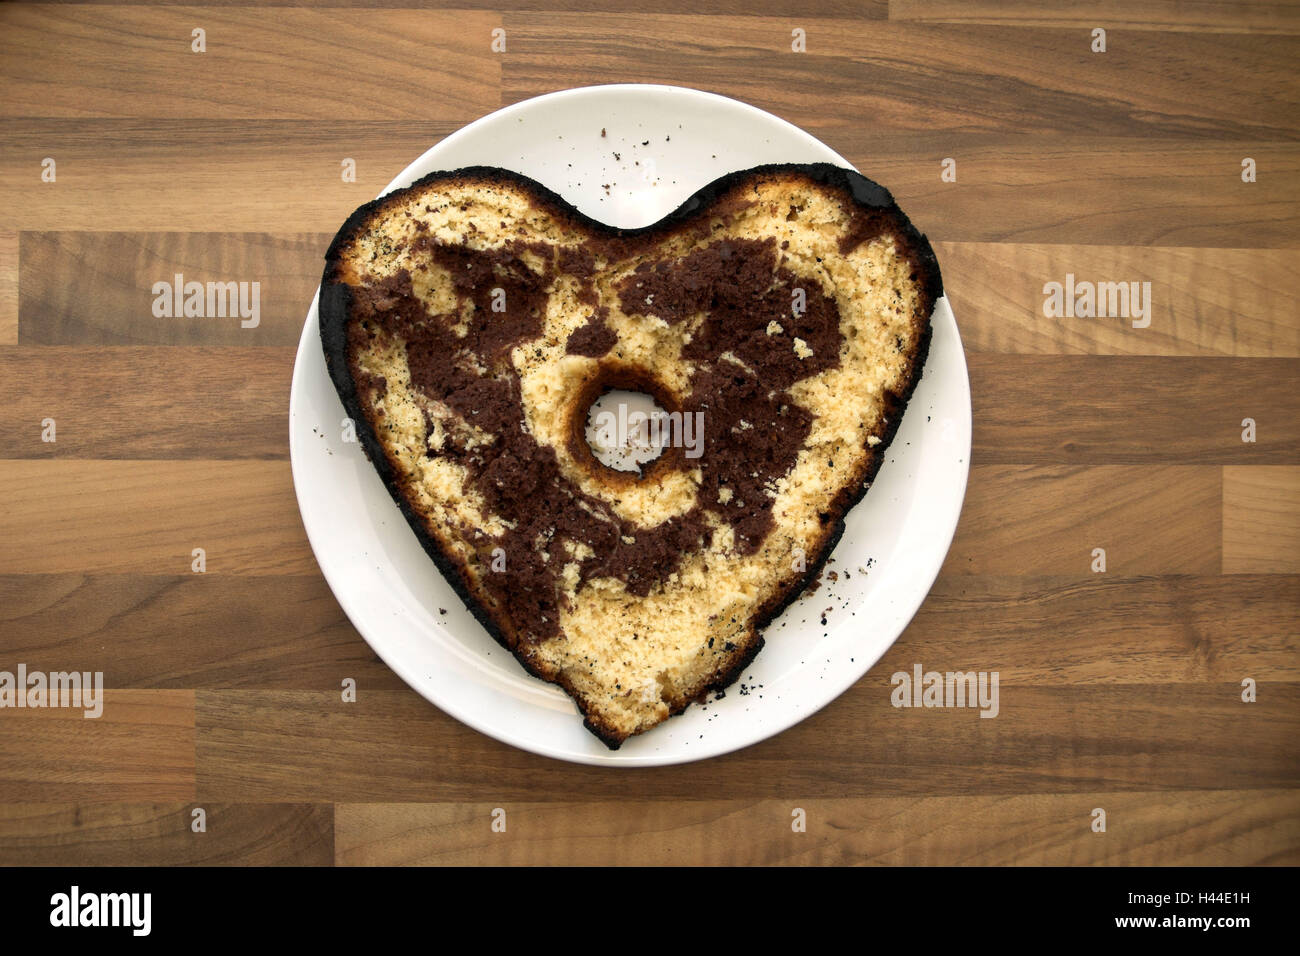 Cake, marble cake, herfzörmig, heart, heart form, icon, love, Valentinstag, marbles, baked, hole, crumb, cake - Stock Image